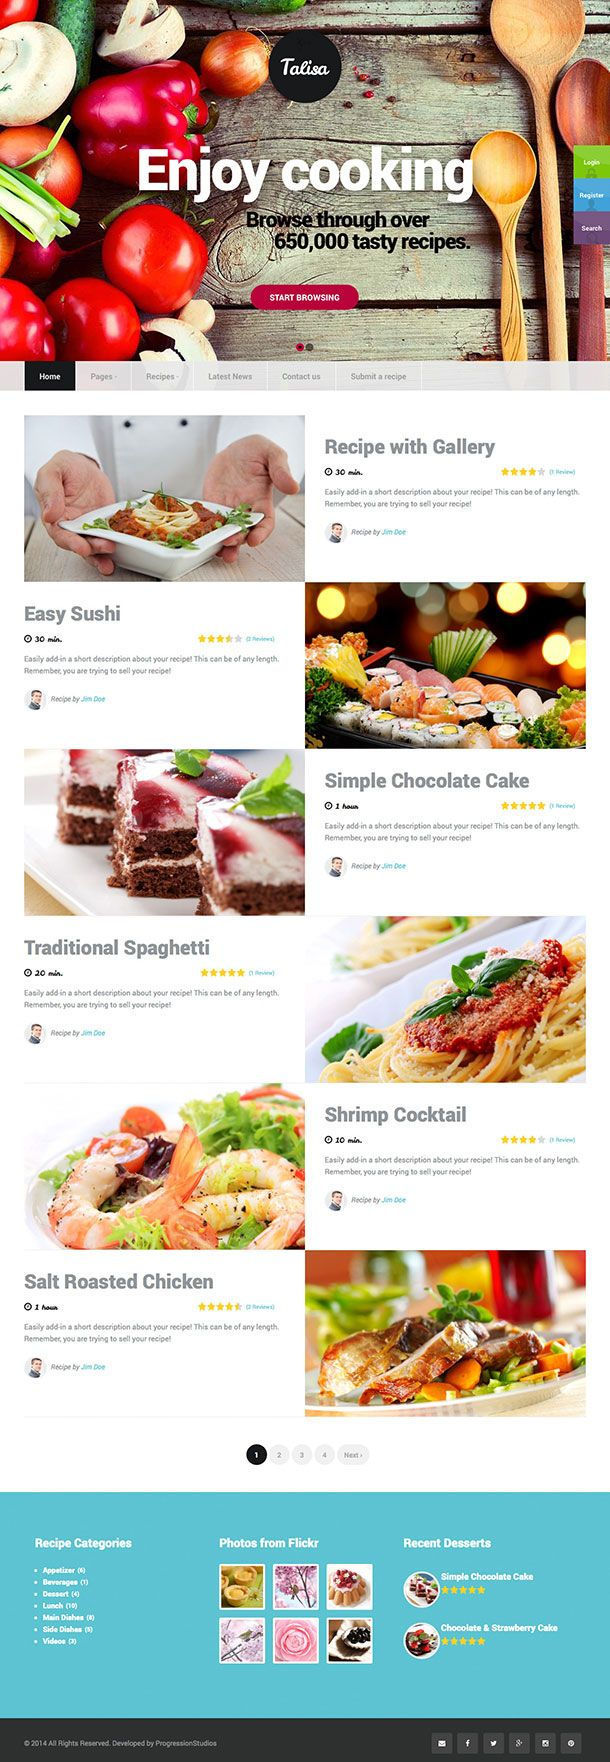 10 best food blog templates images on pinterest wordpress buy talisa food recipes wordpress theme by progressionstudios on themeforest show off your work with this easy to customize and fully featured wordpress forumfinder Choice Image